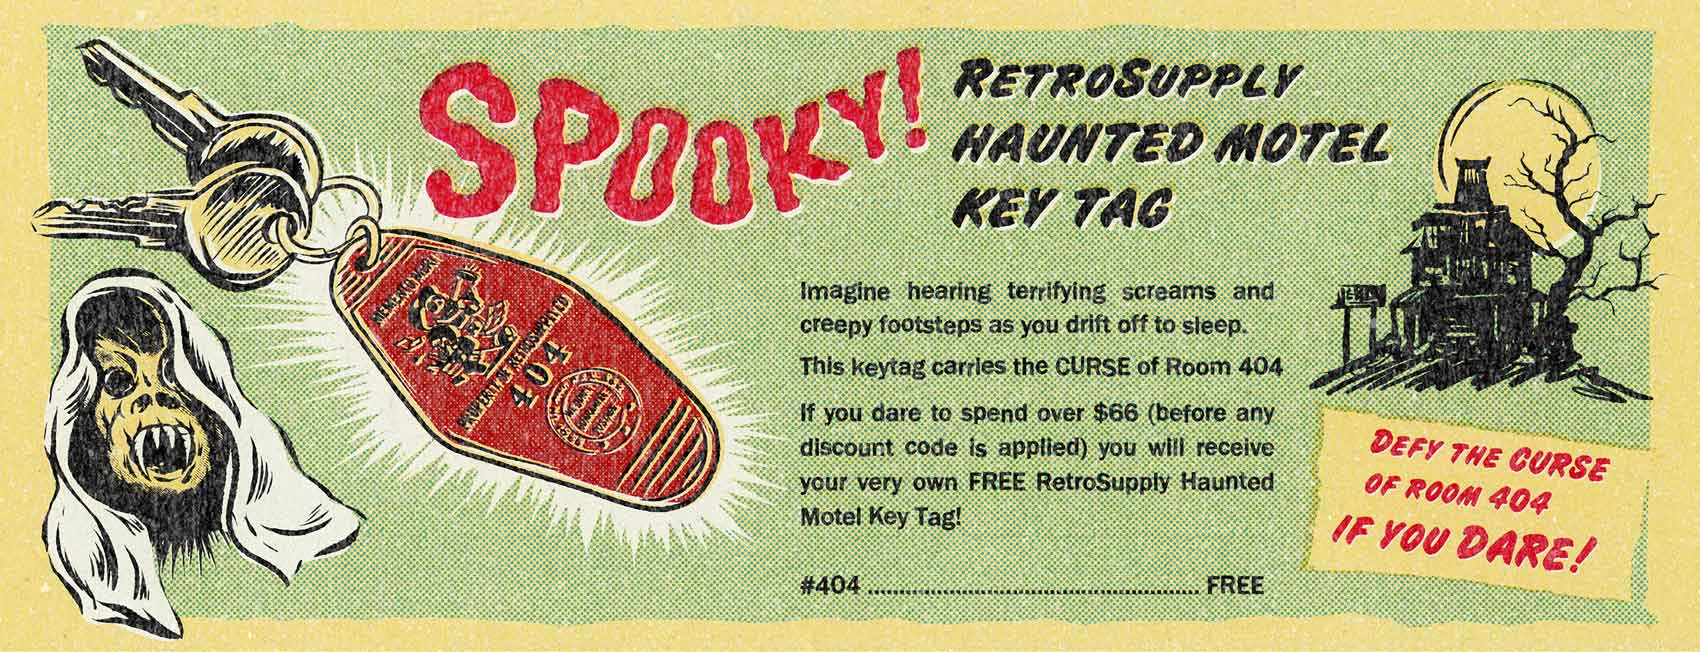 RetroSupply Official Haunted Motel Key Tag